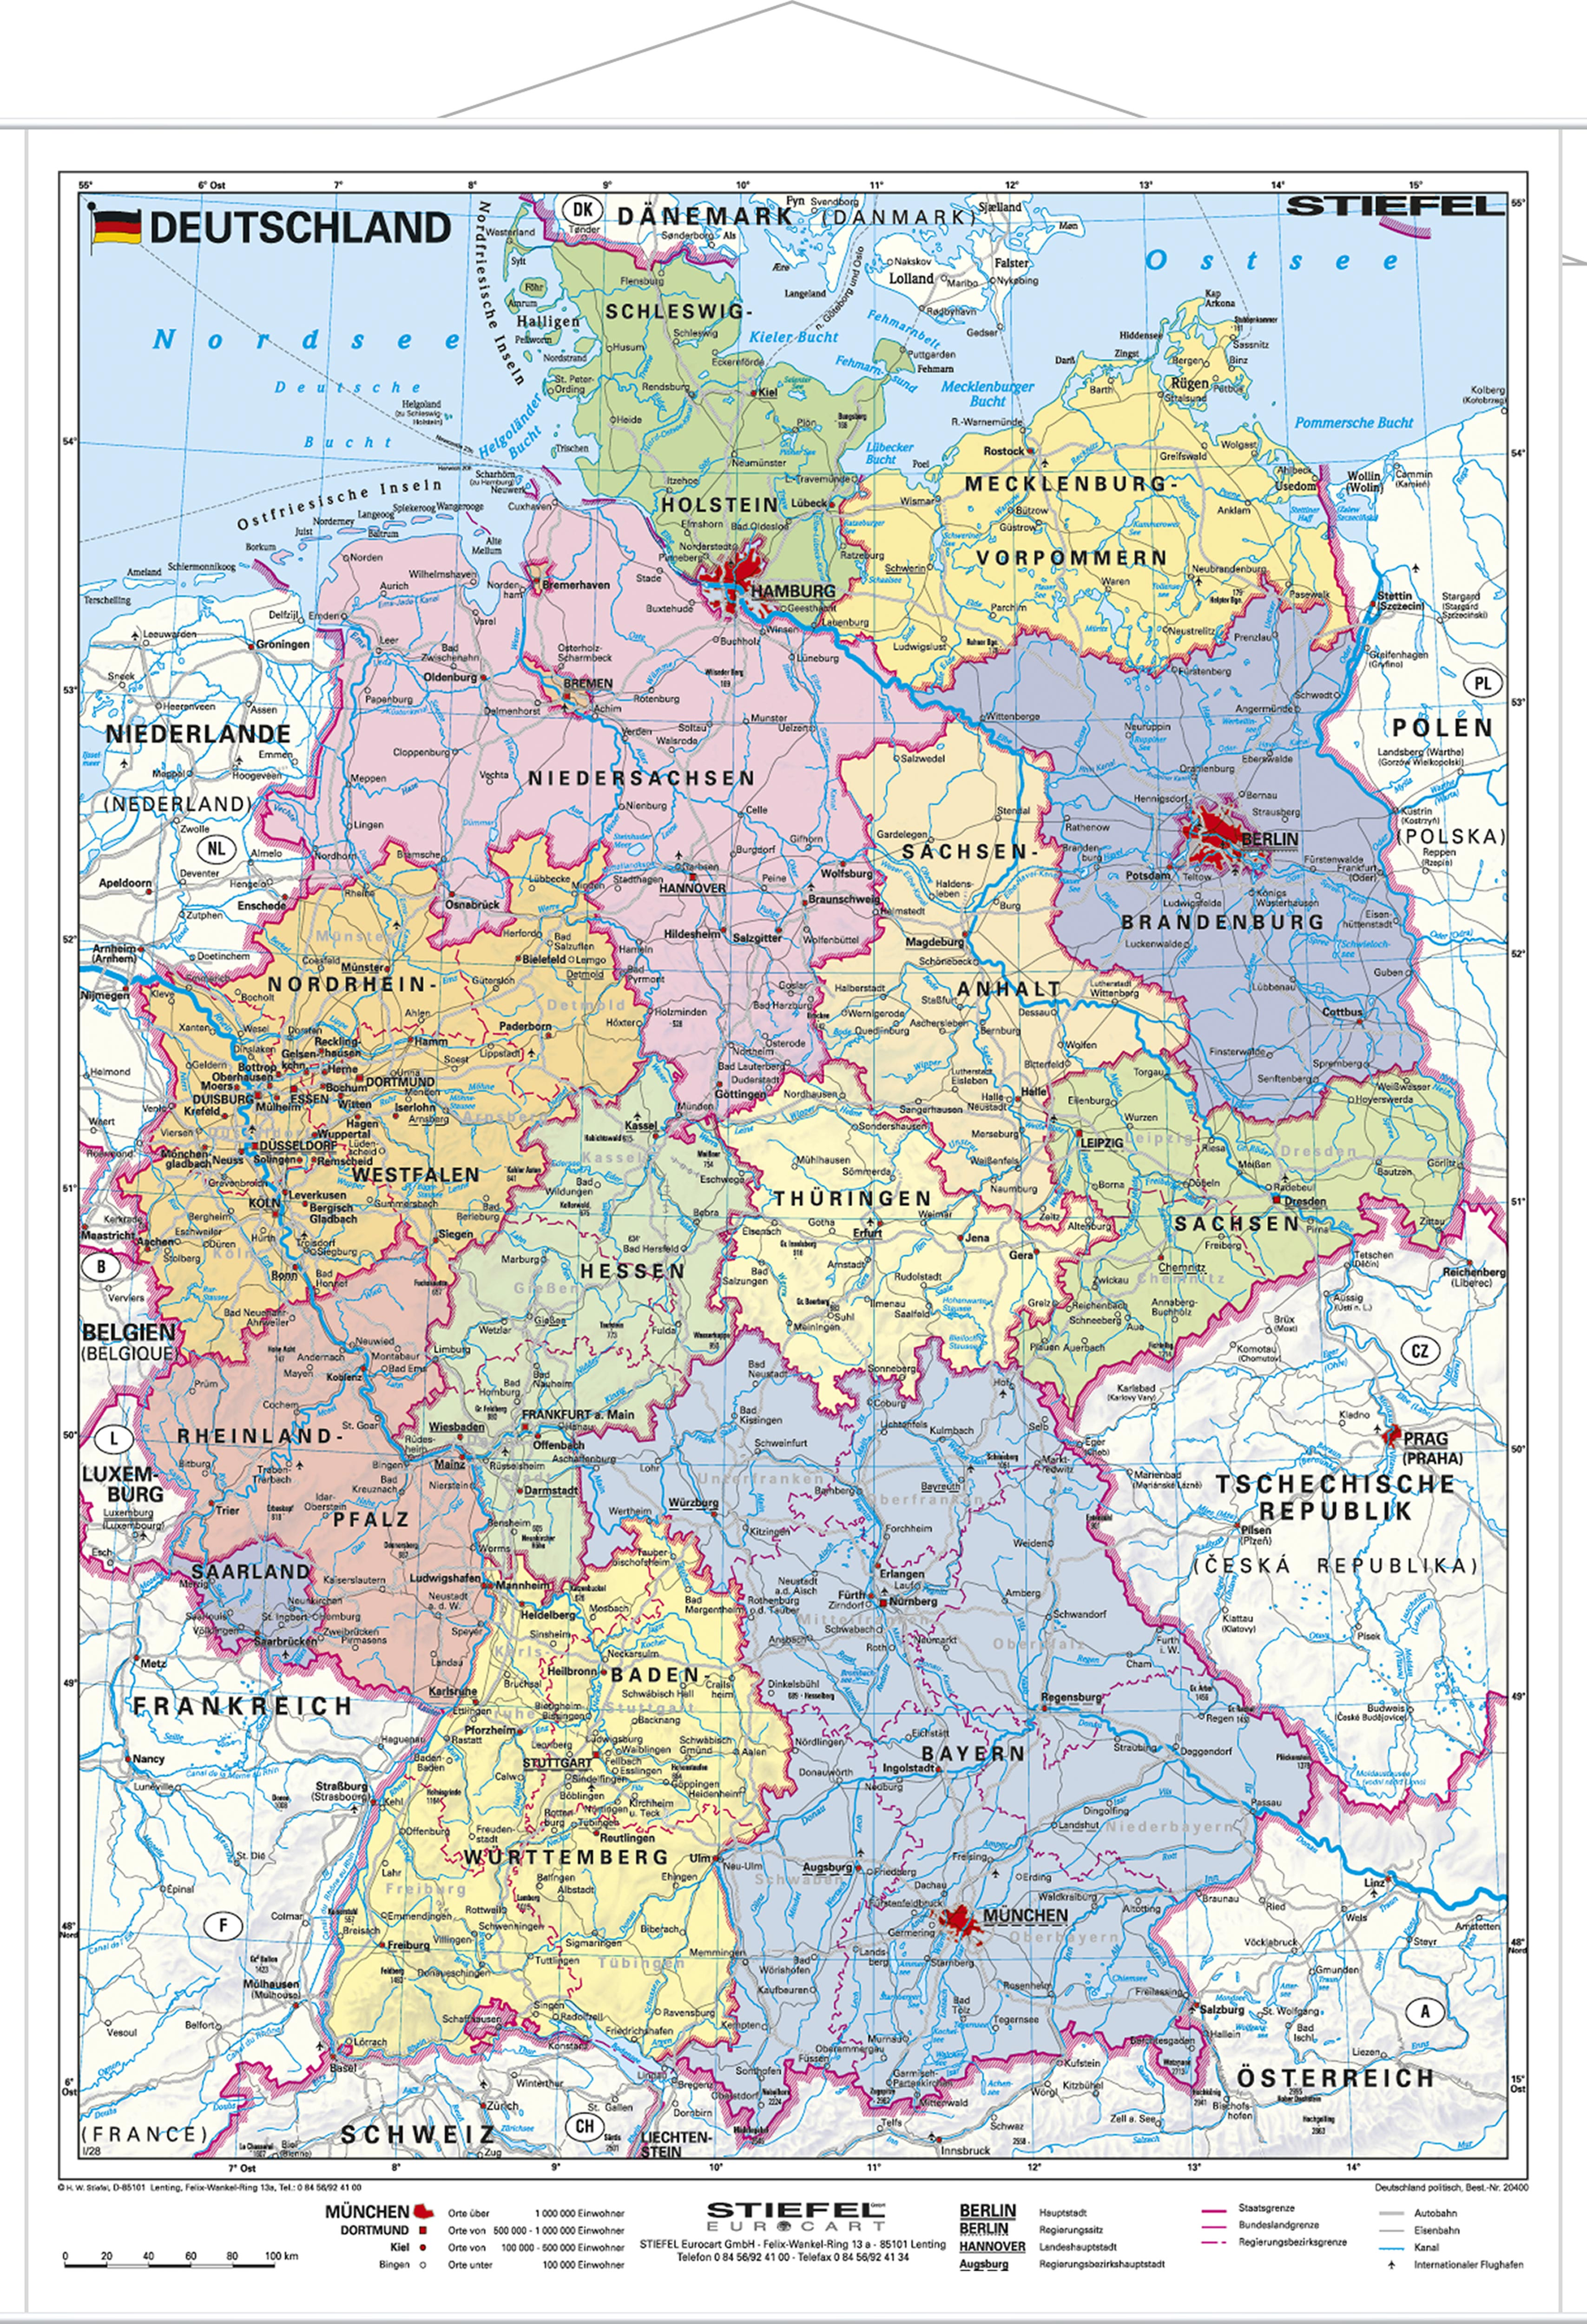 Map Of Deutschland Germany.Political Germany Wall Map 120 X 160cm Germany Wall Maps Europe